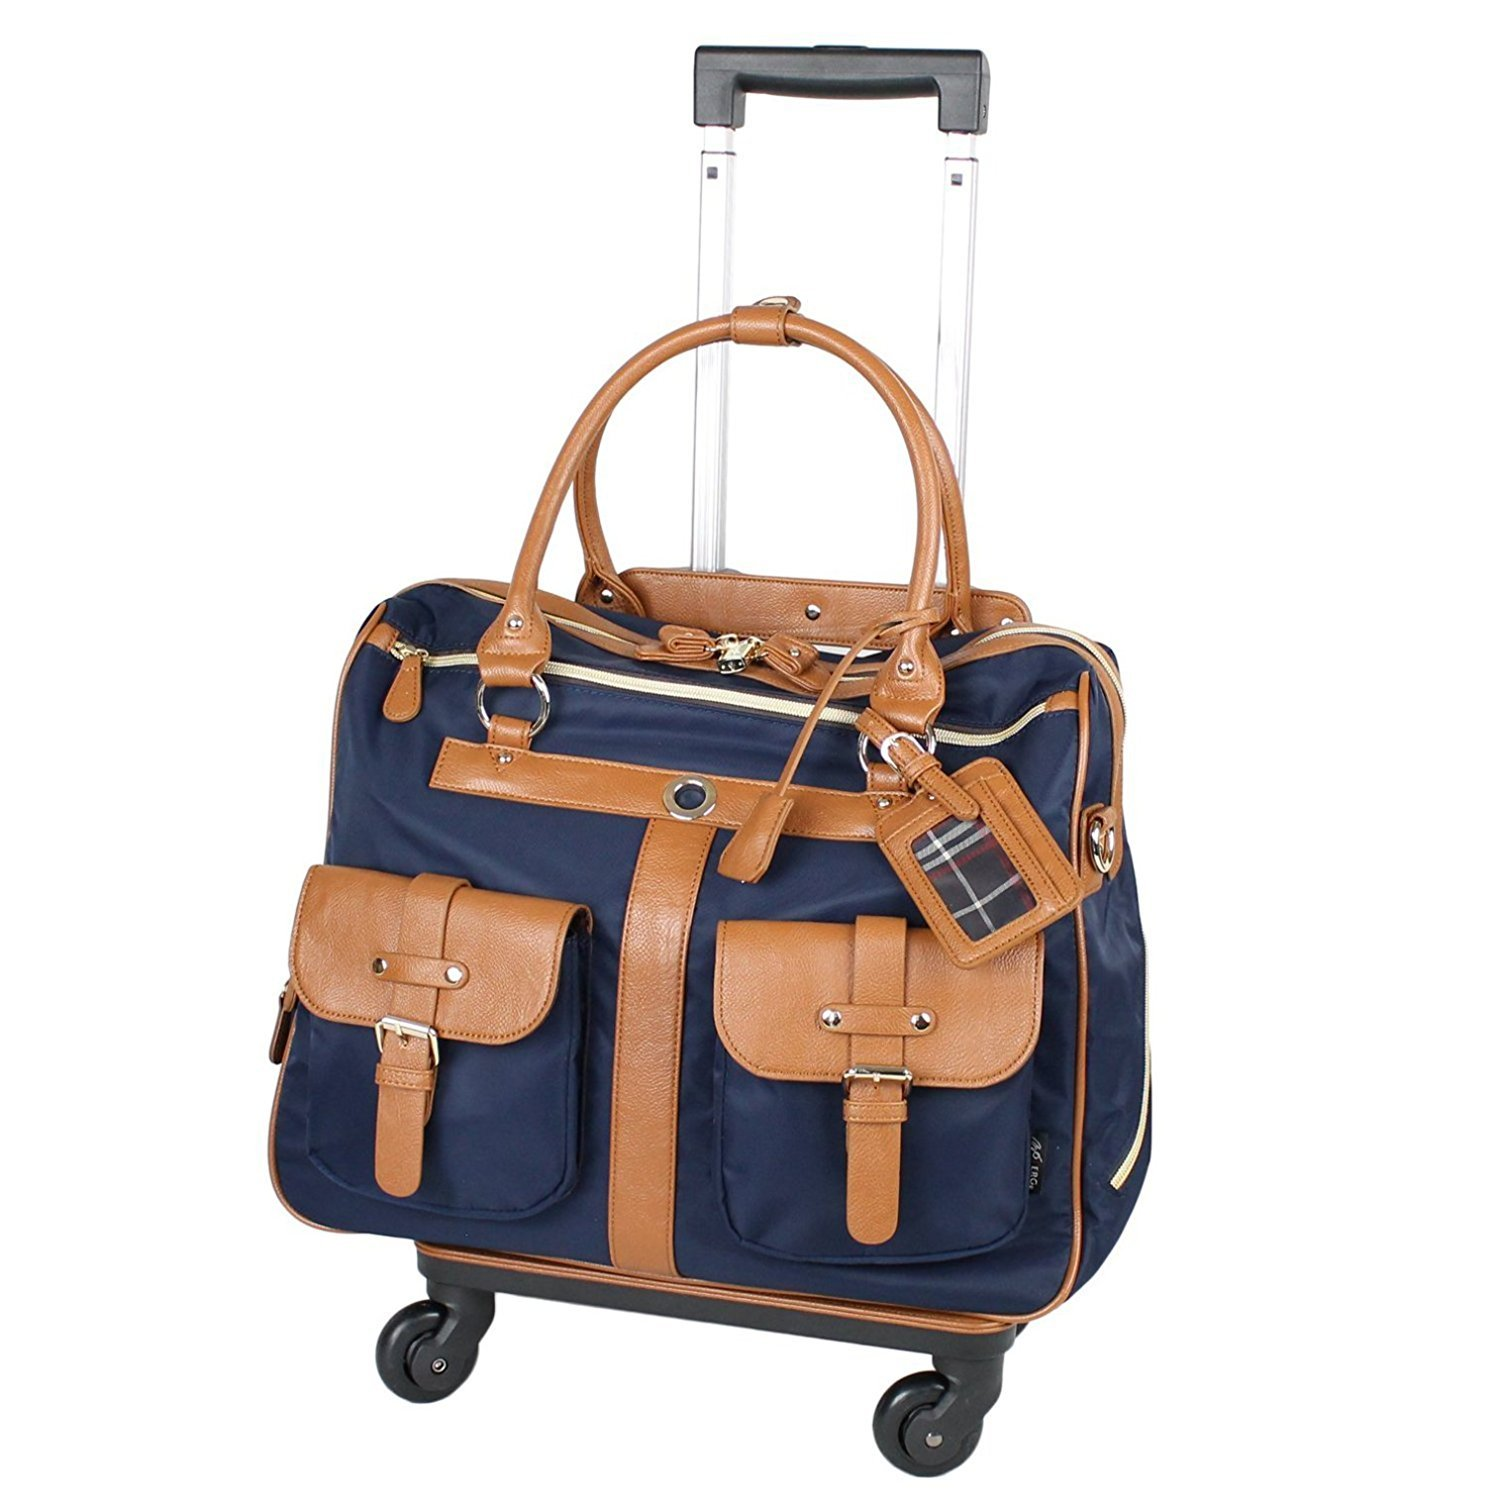 MOIERG Travel TotesTrolley Luggage suitcase with Multi-Pckets (navy blue)[71-11208-50]